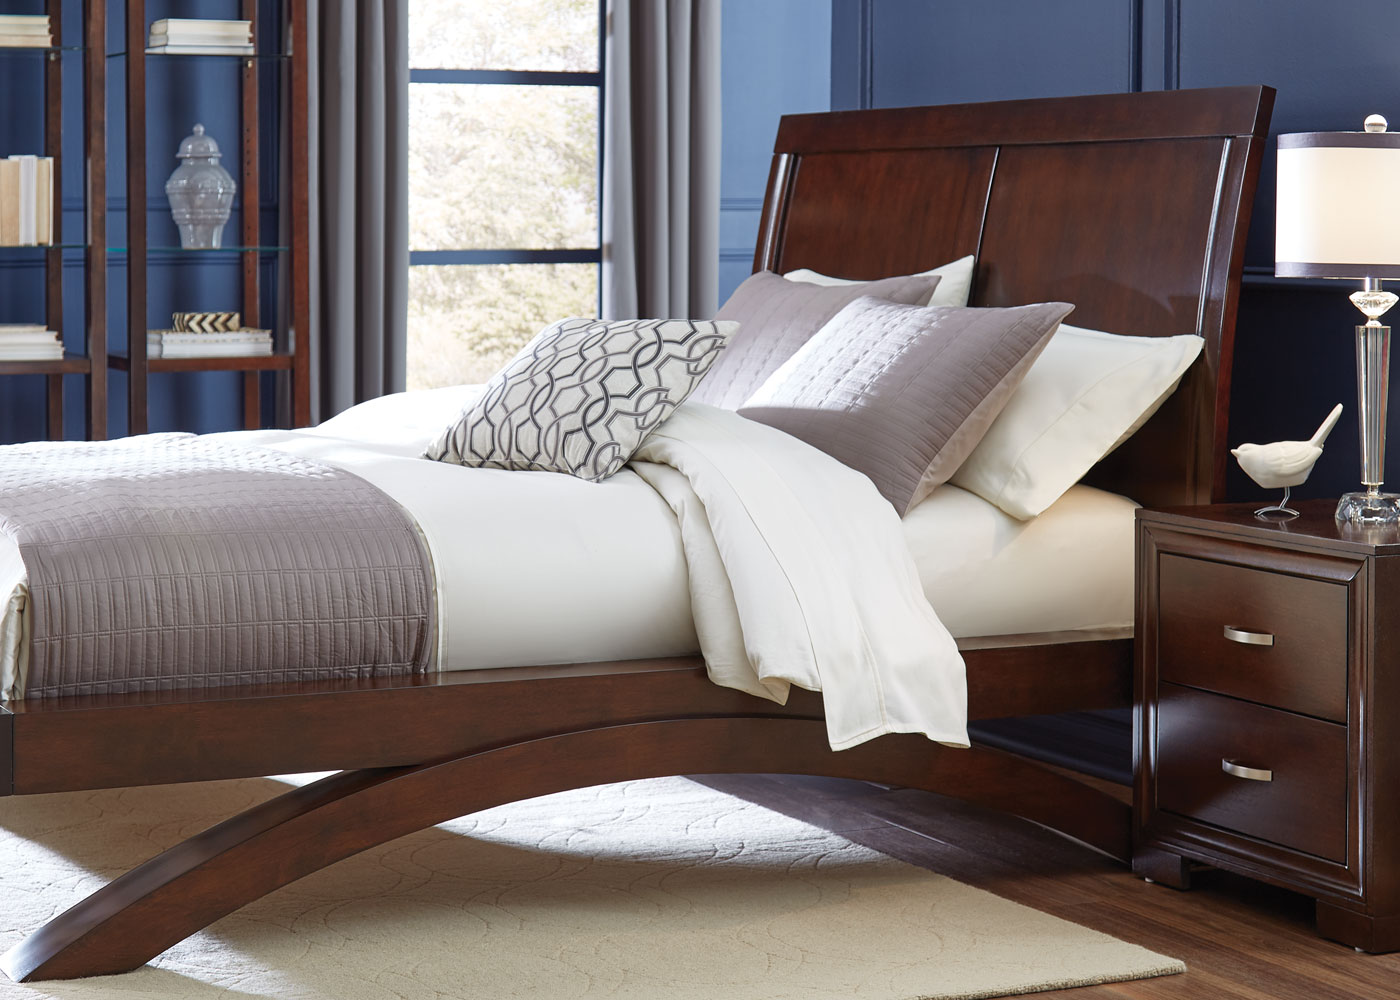 The Best Addresses For Rental Of Furniture In Valdosta Ga There Are 02 Results For Your